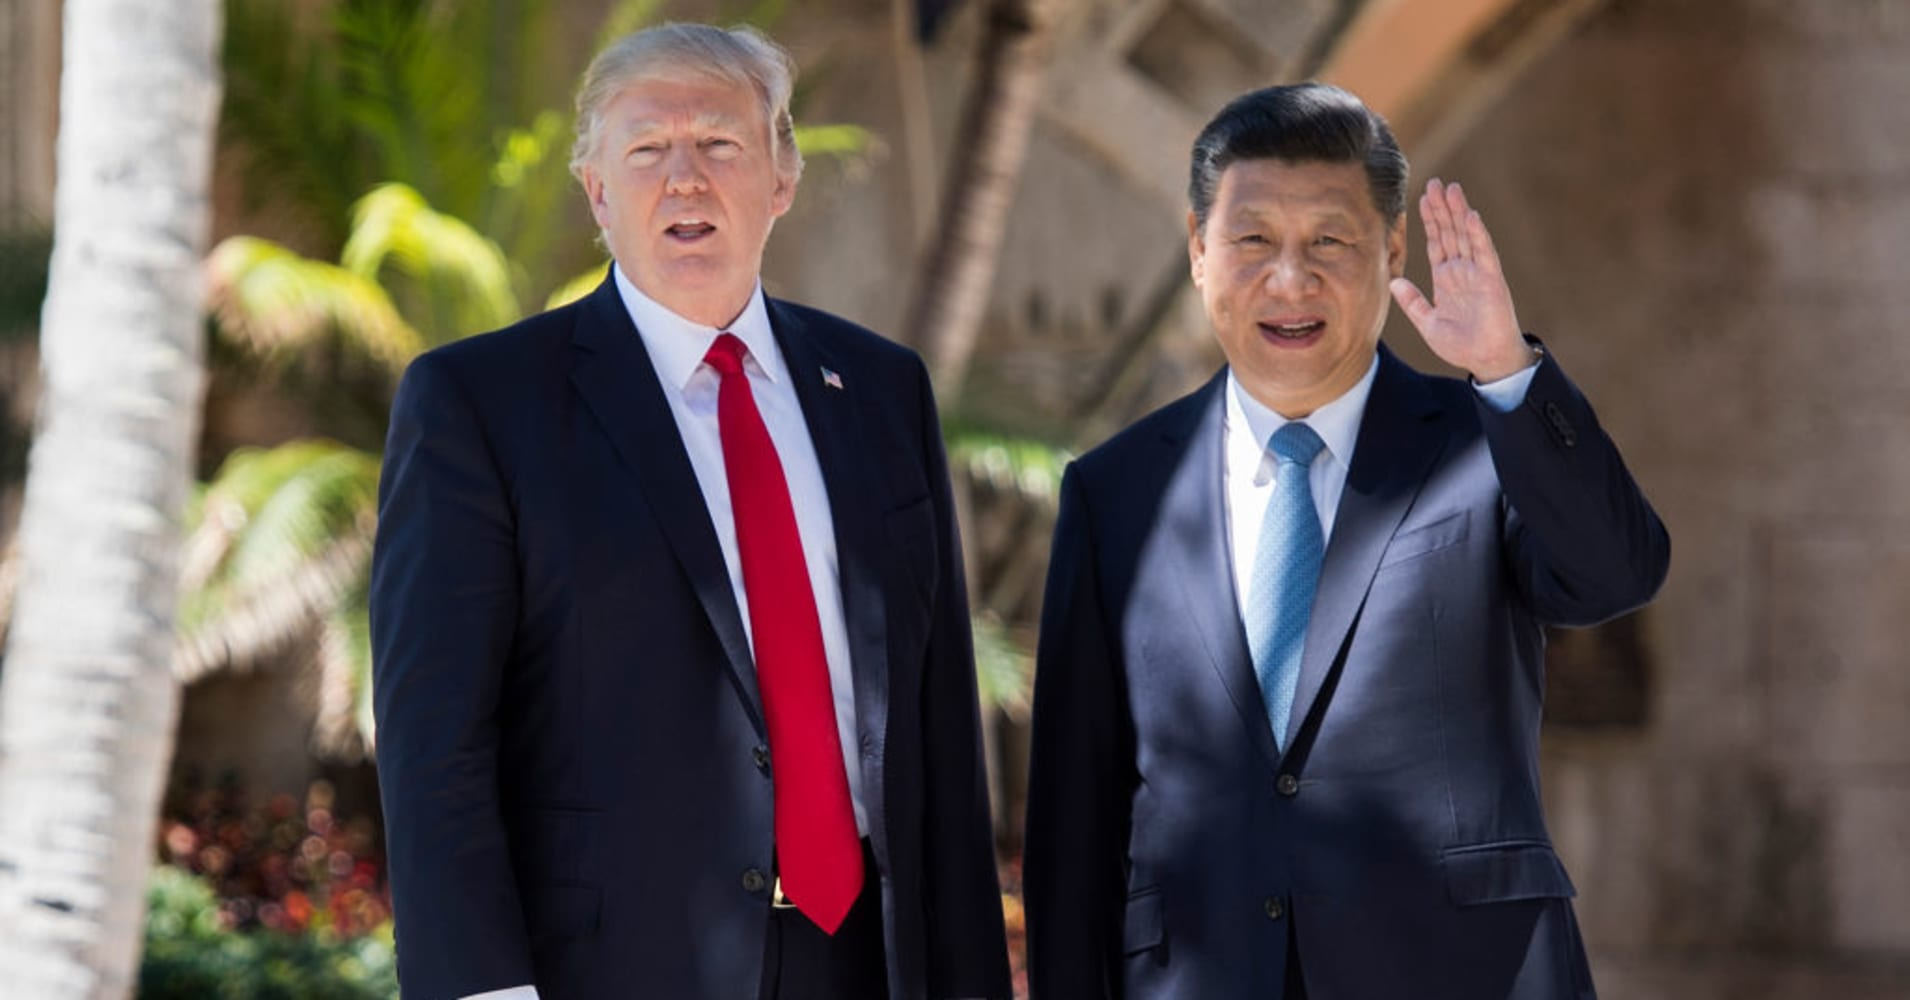 It's not over: The US-China trade war is still on despite 90-day tariff ceasefire, experts say